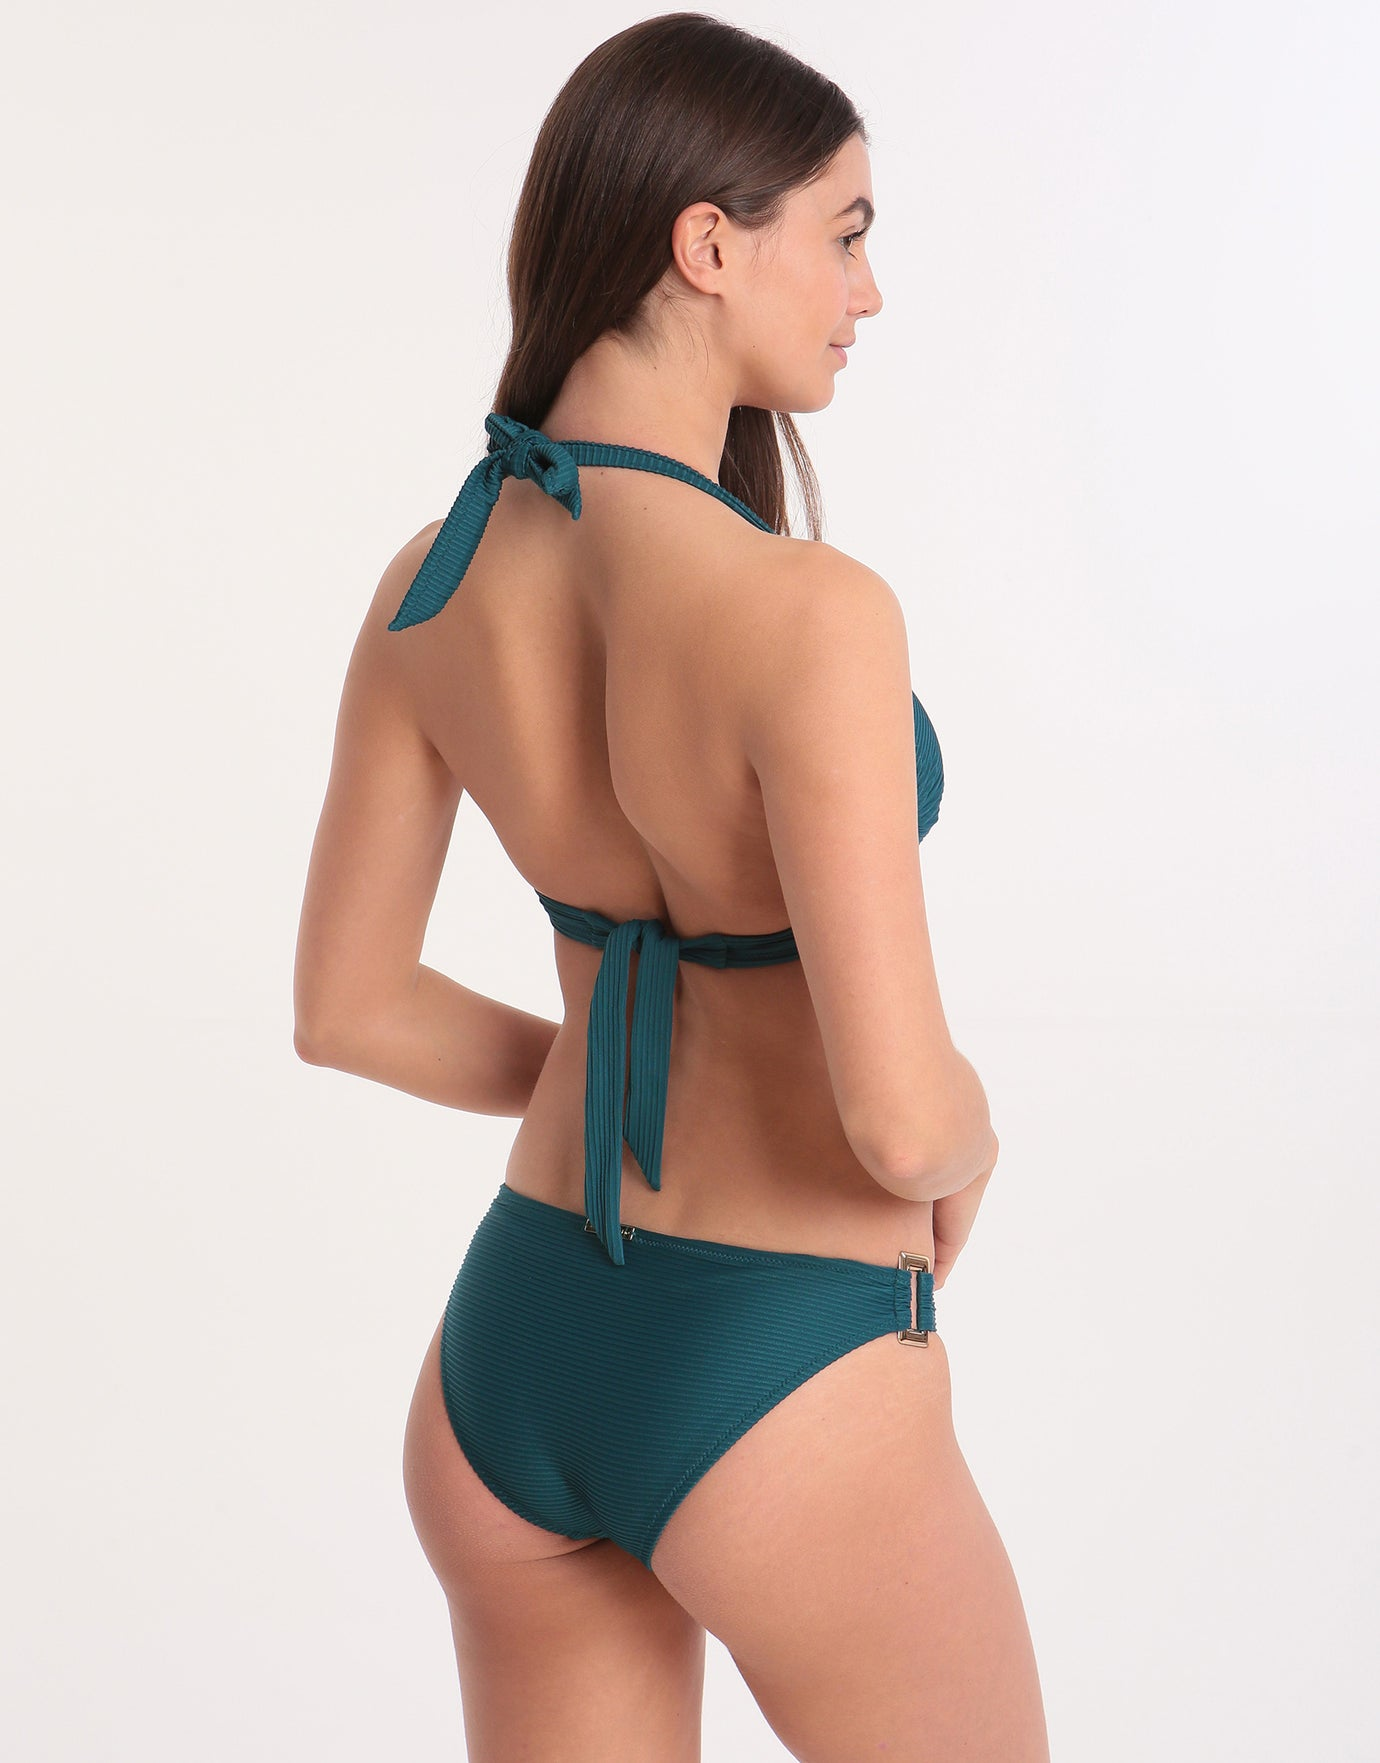 Heidi Klein Ubud Rectangle Halter Bikini Top - Teal